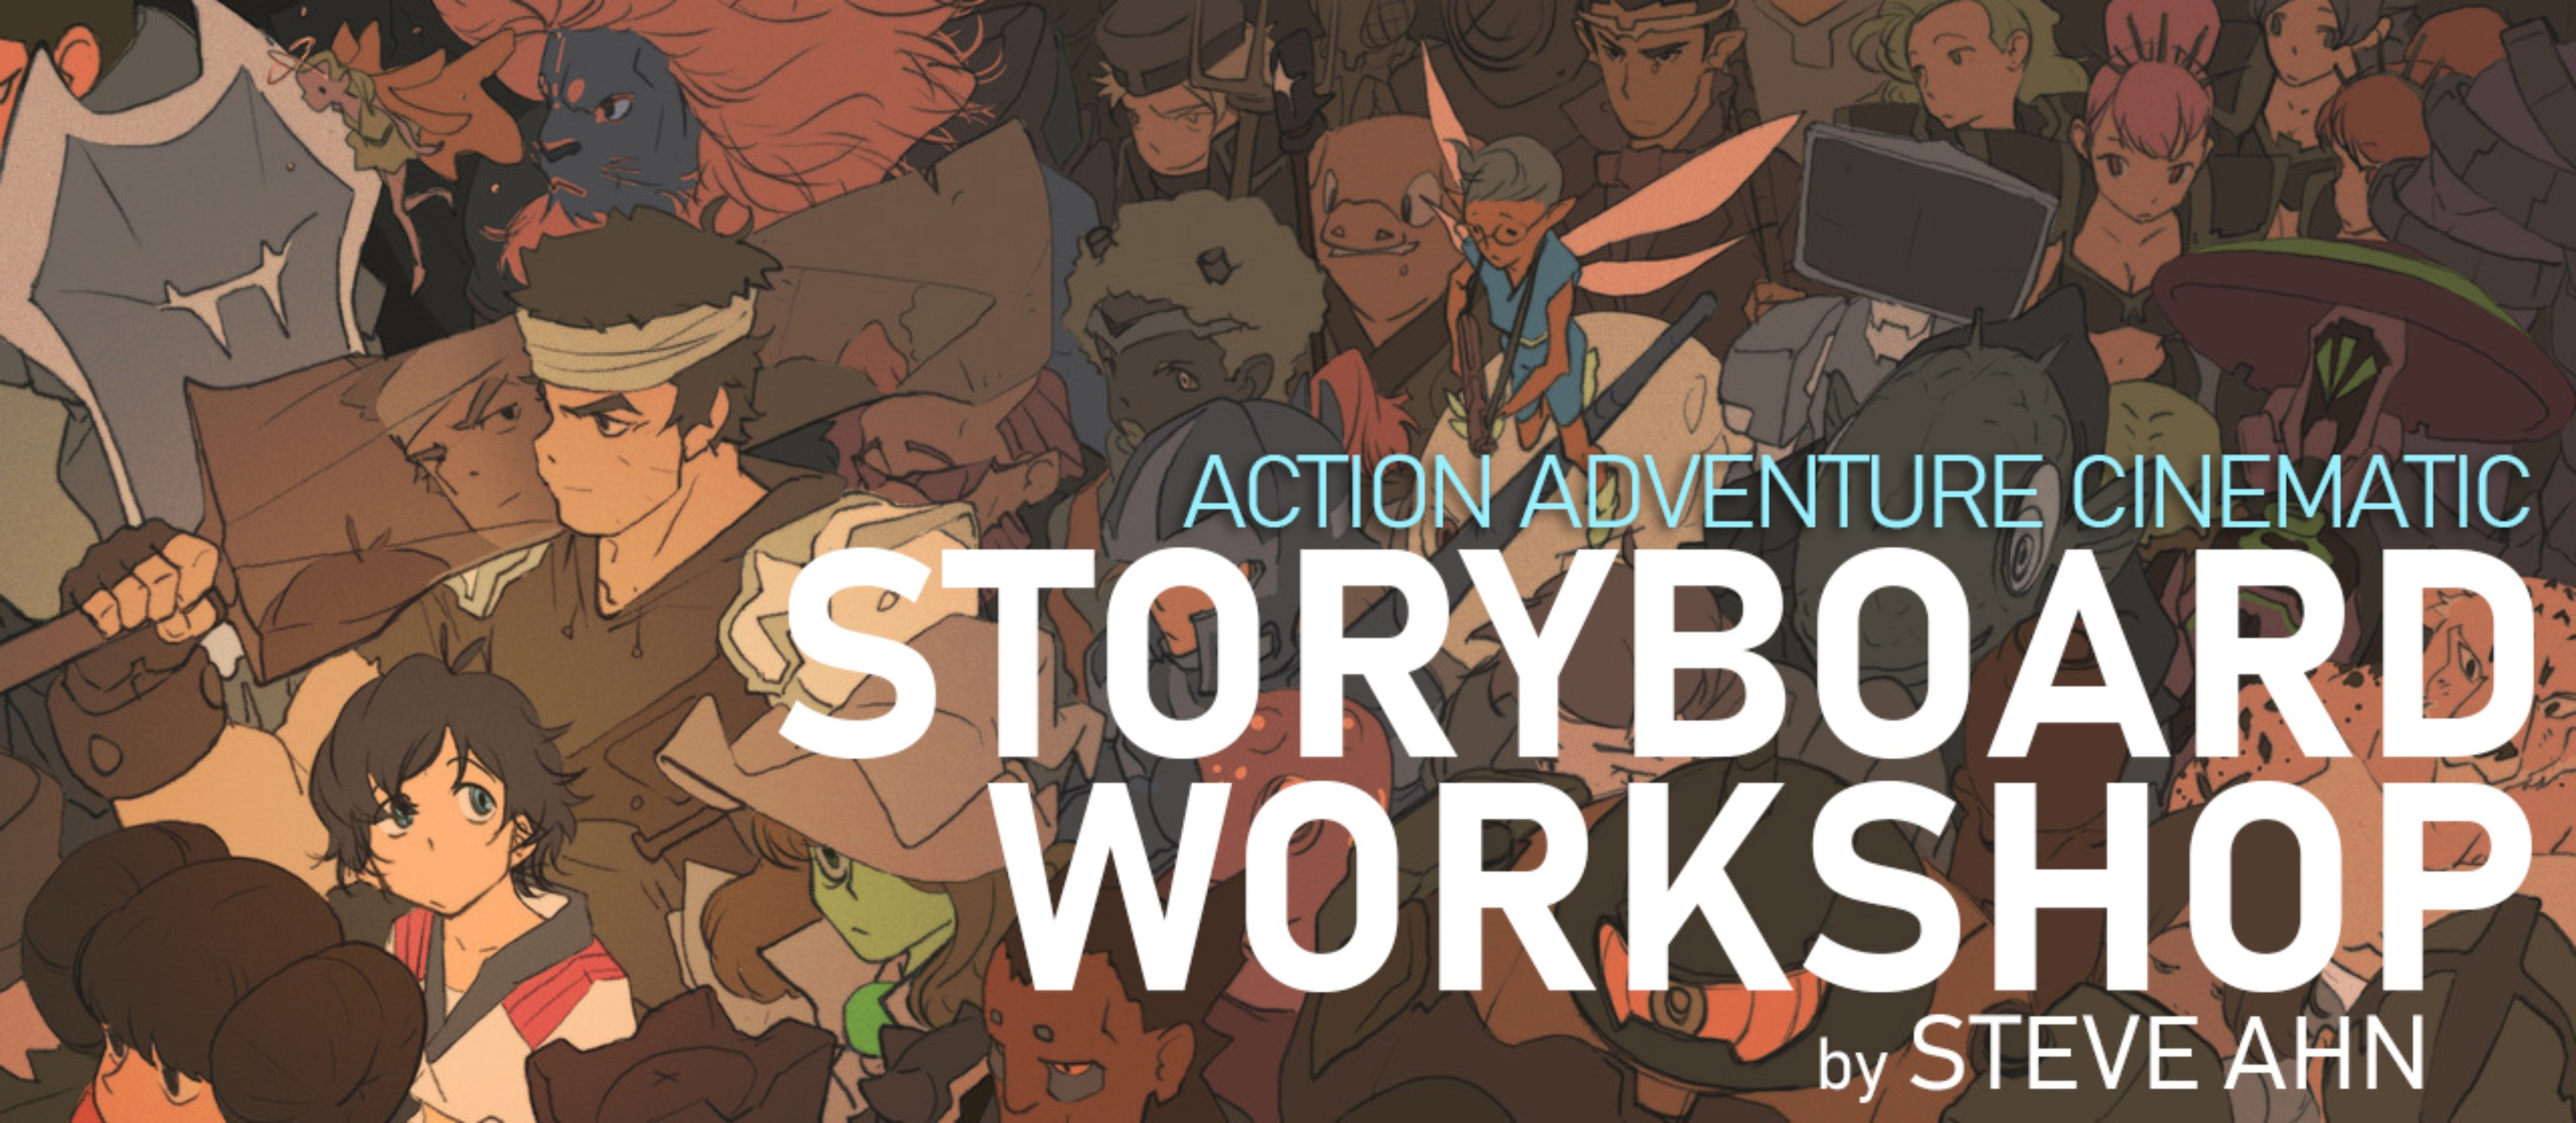 Action Adventure Cinematic Storyboard Workshop (Audit Version)